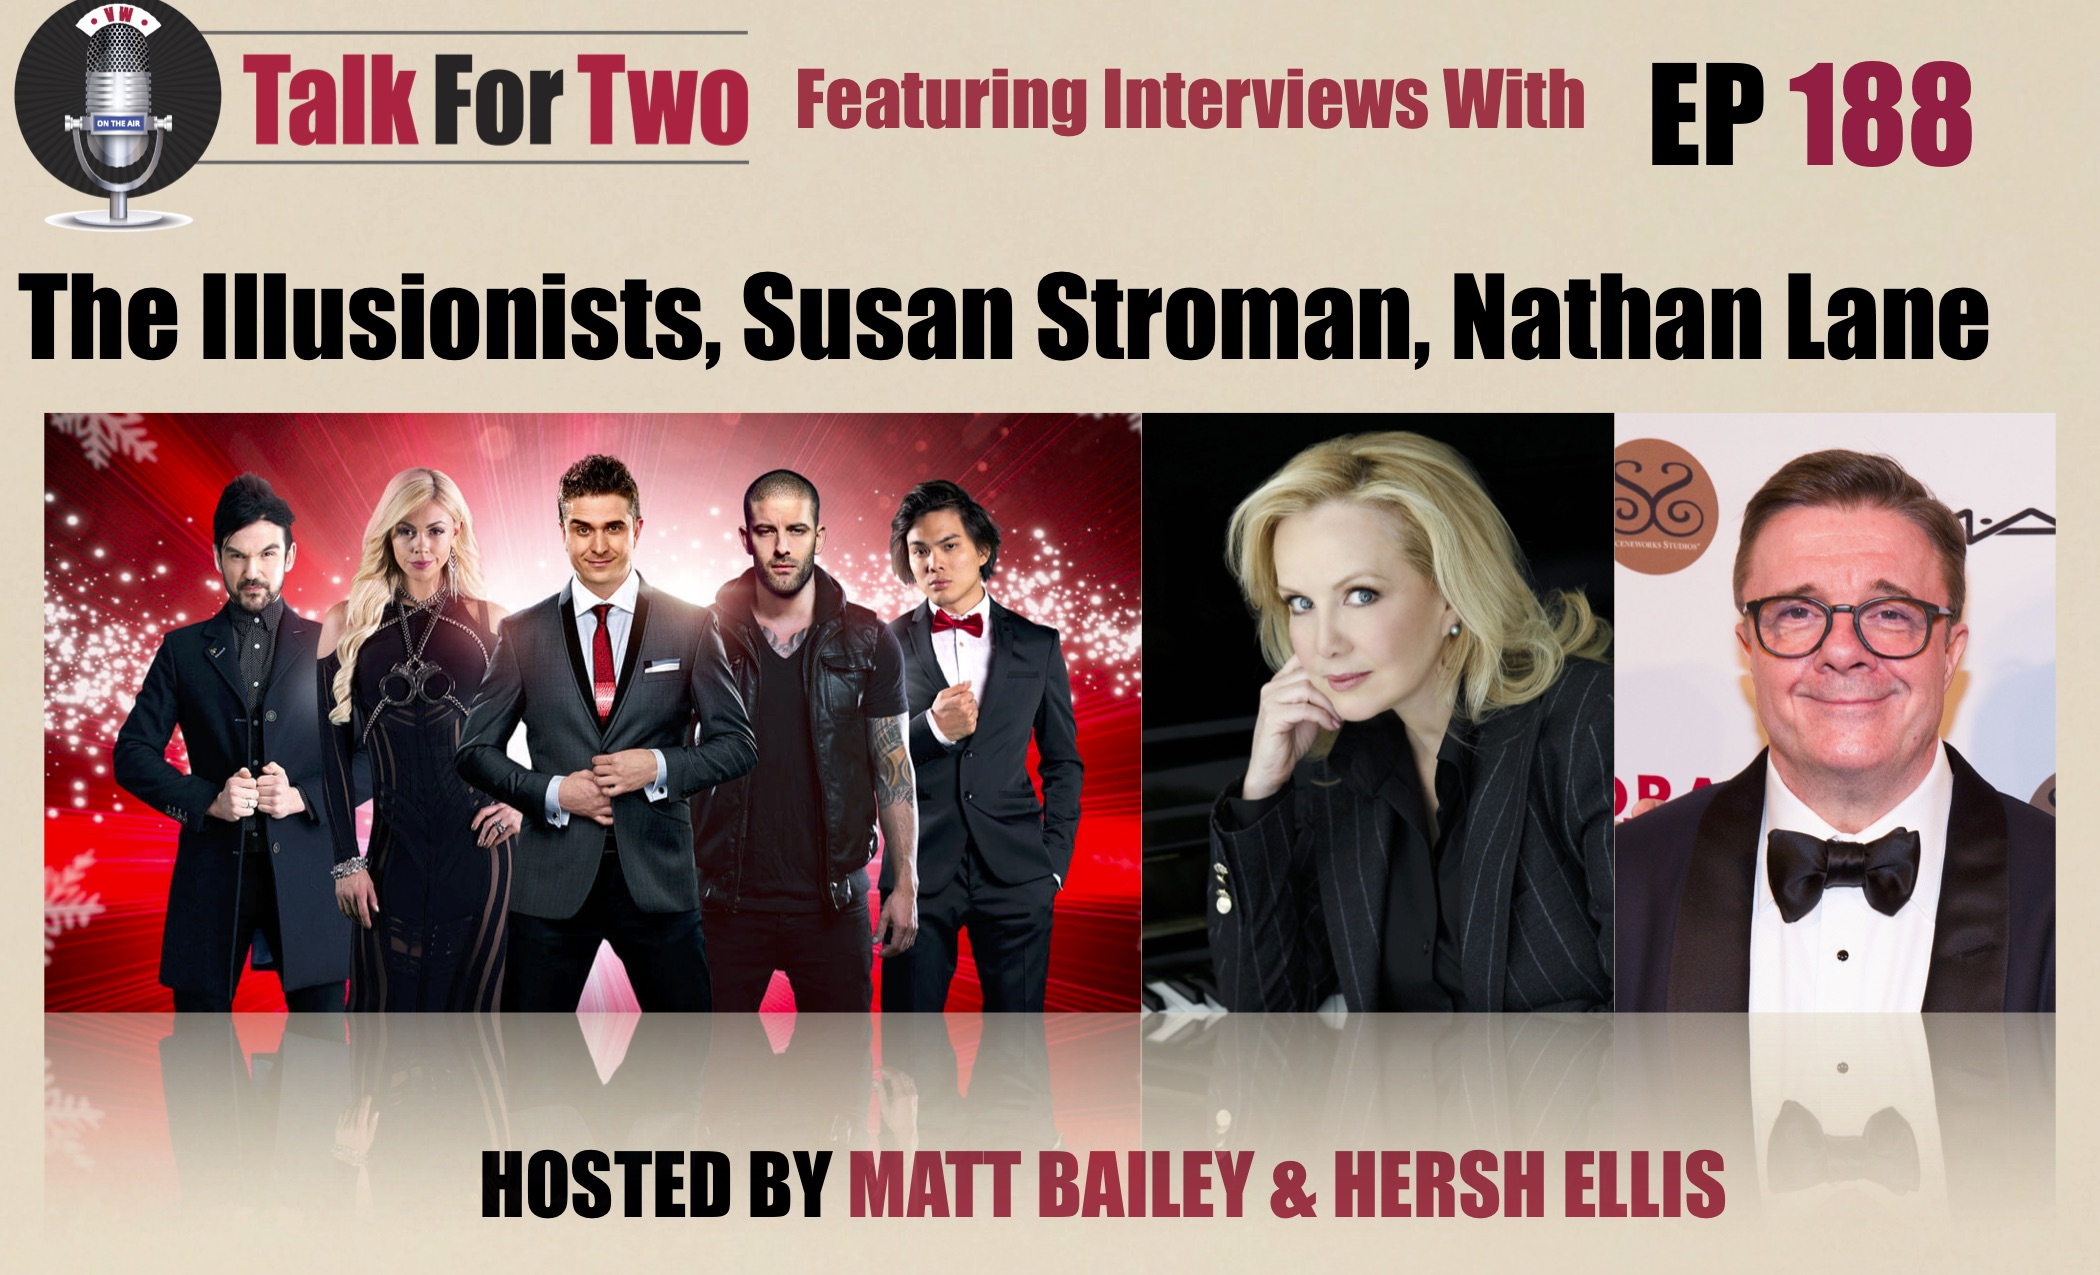 Nathan Lane, The Illusionists, The Drama League, Drama League Gala, Susan Stroman